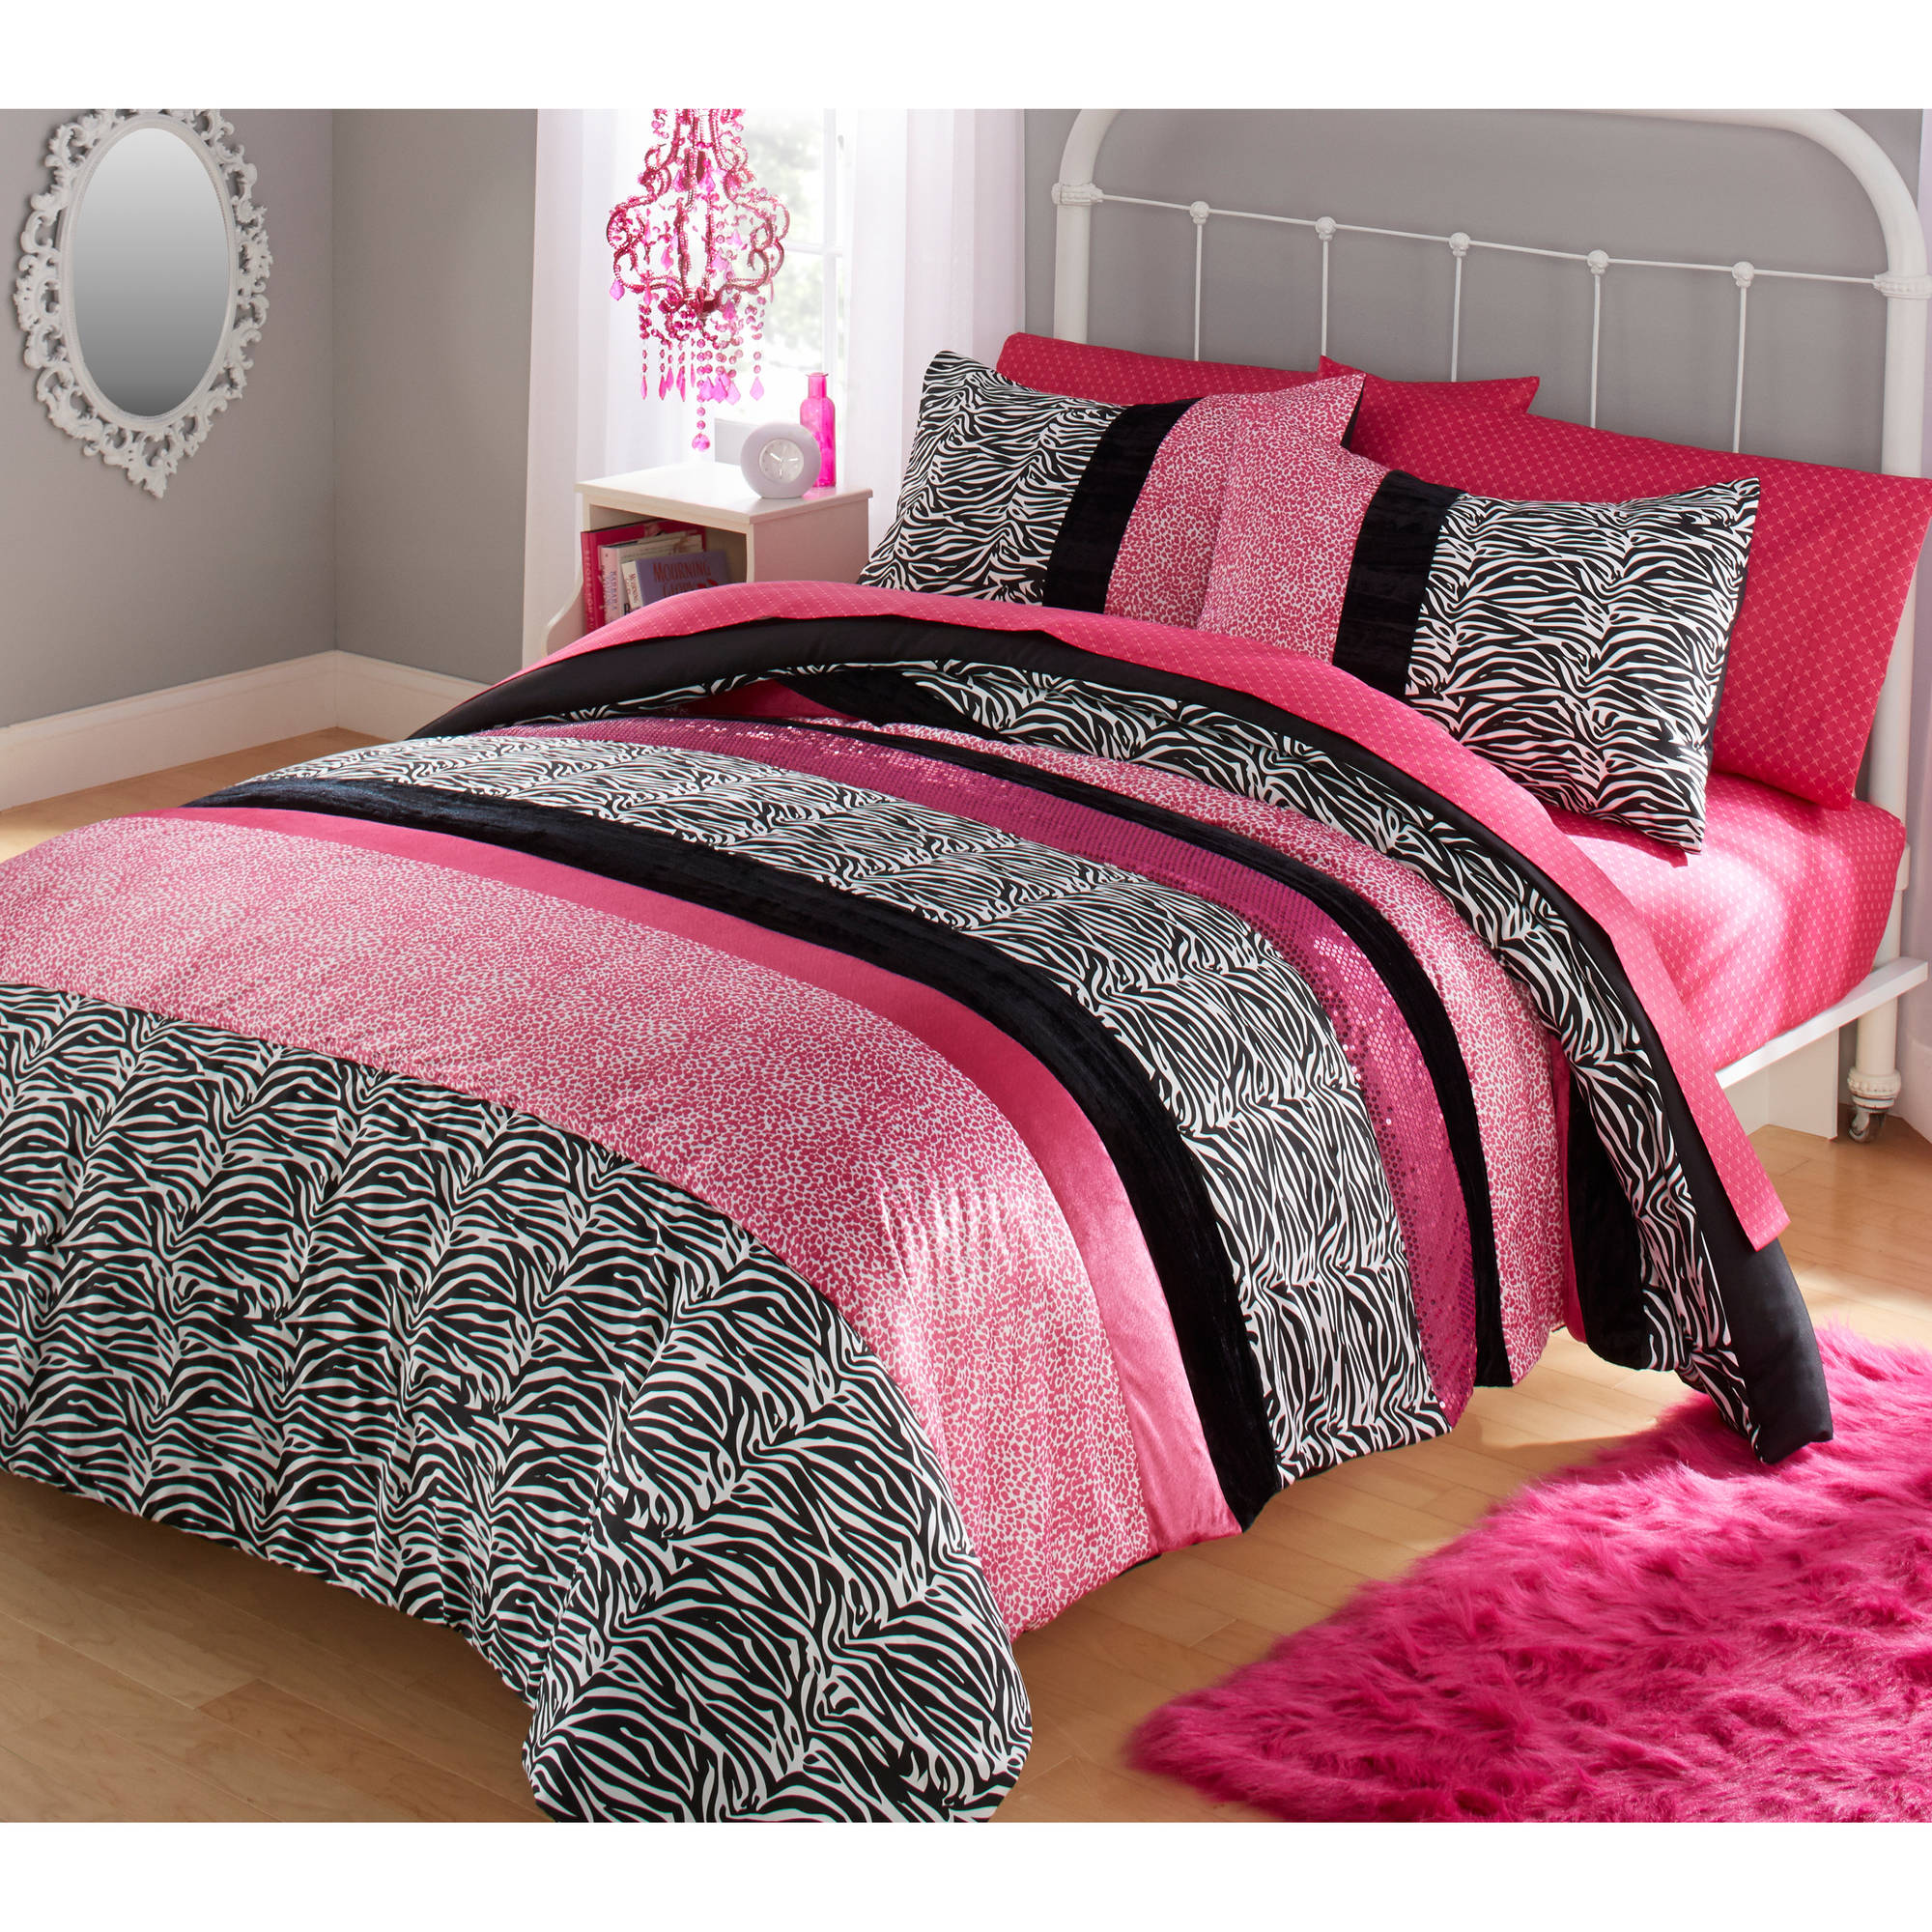 Your Zone Zebra Bedding Comforter Set   Walmart.com